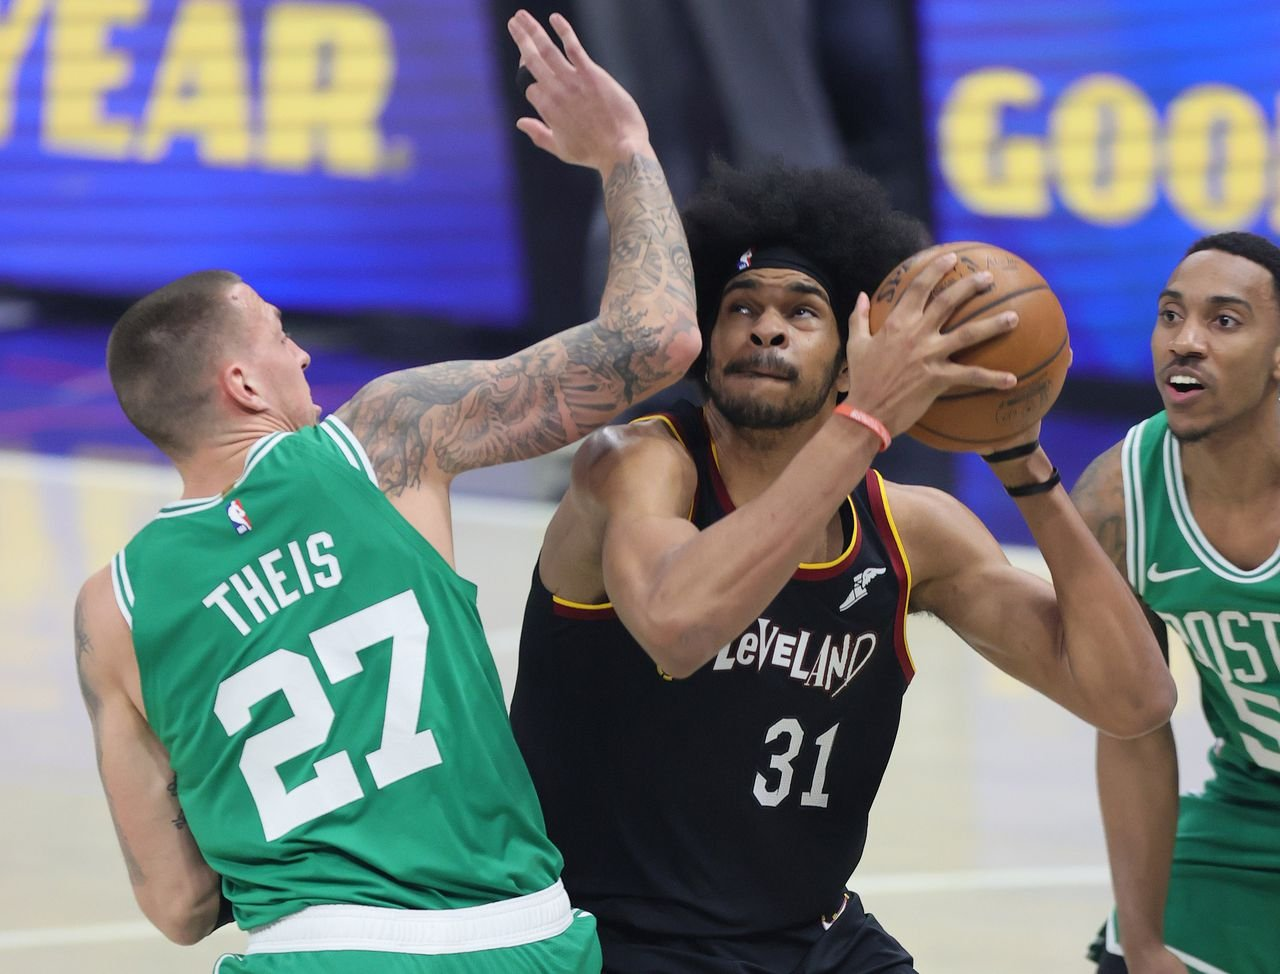 Cleveland Cavaliers agree to 5-year, $100 million deal with Jarrett Allen, sources say